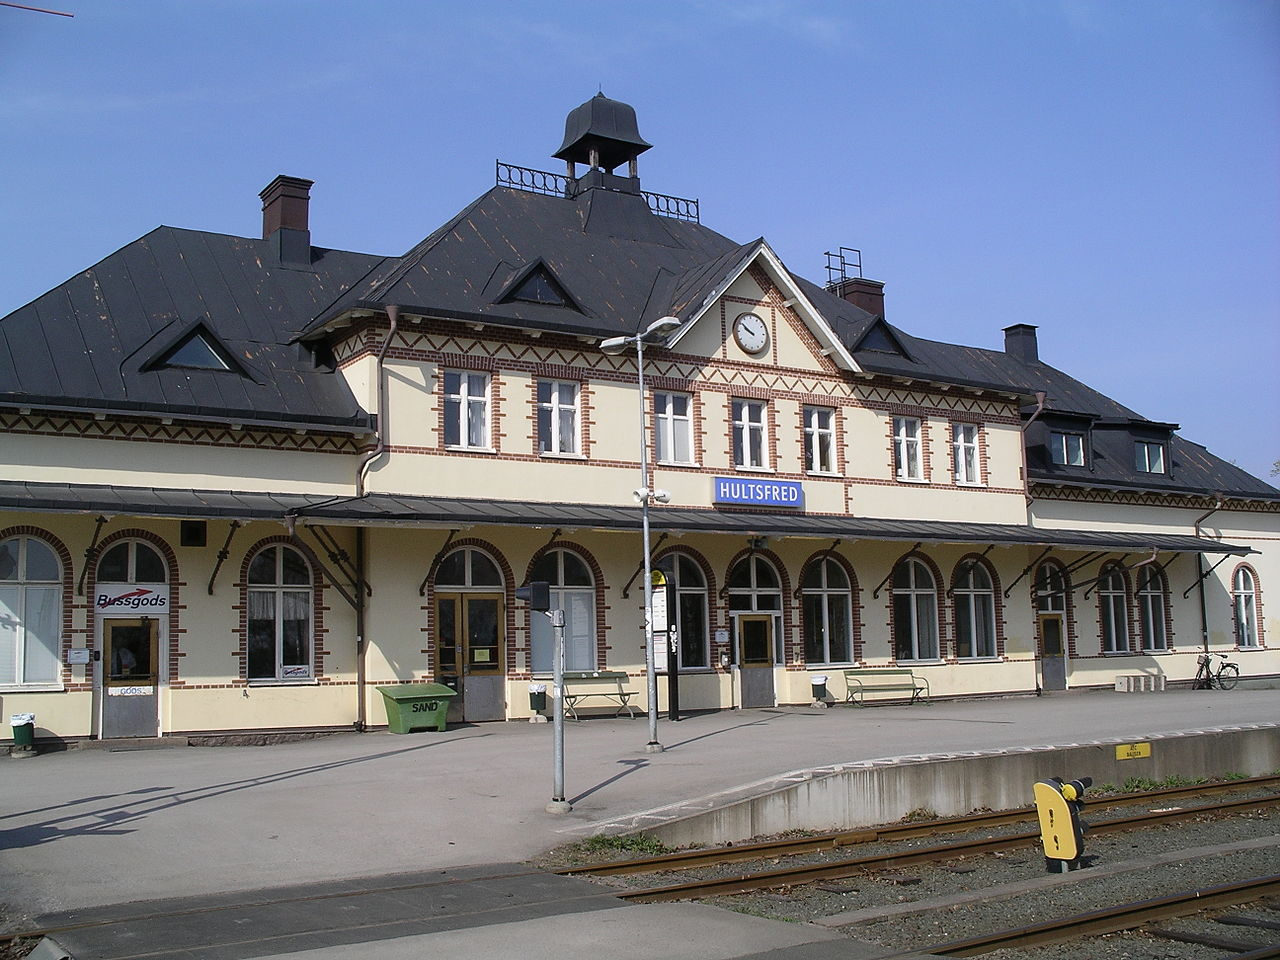 Hultsfred to Alvesta - 2 ways to travel via train, bus, and car